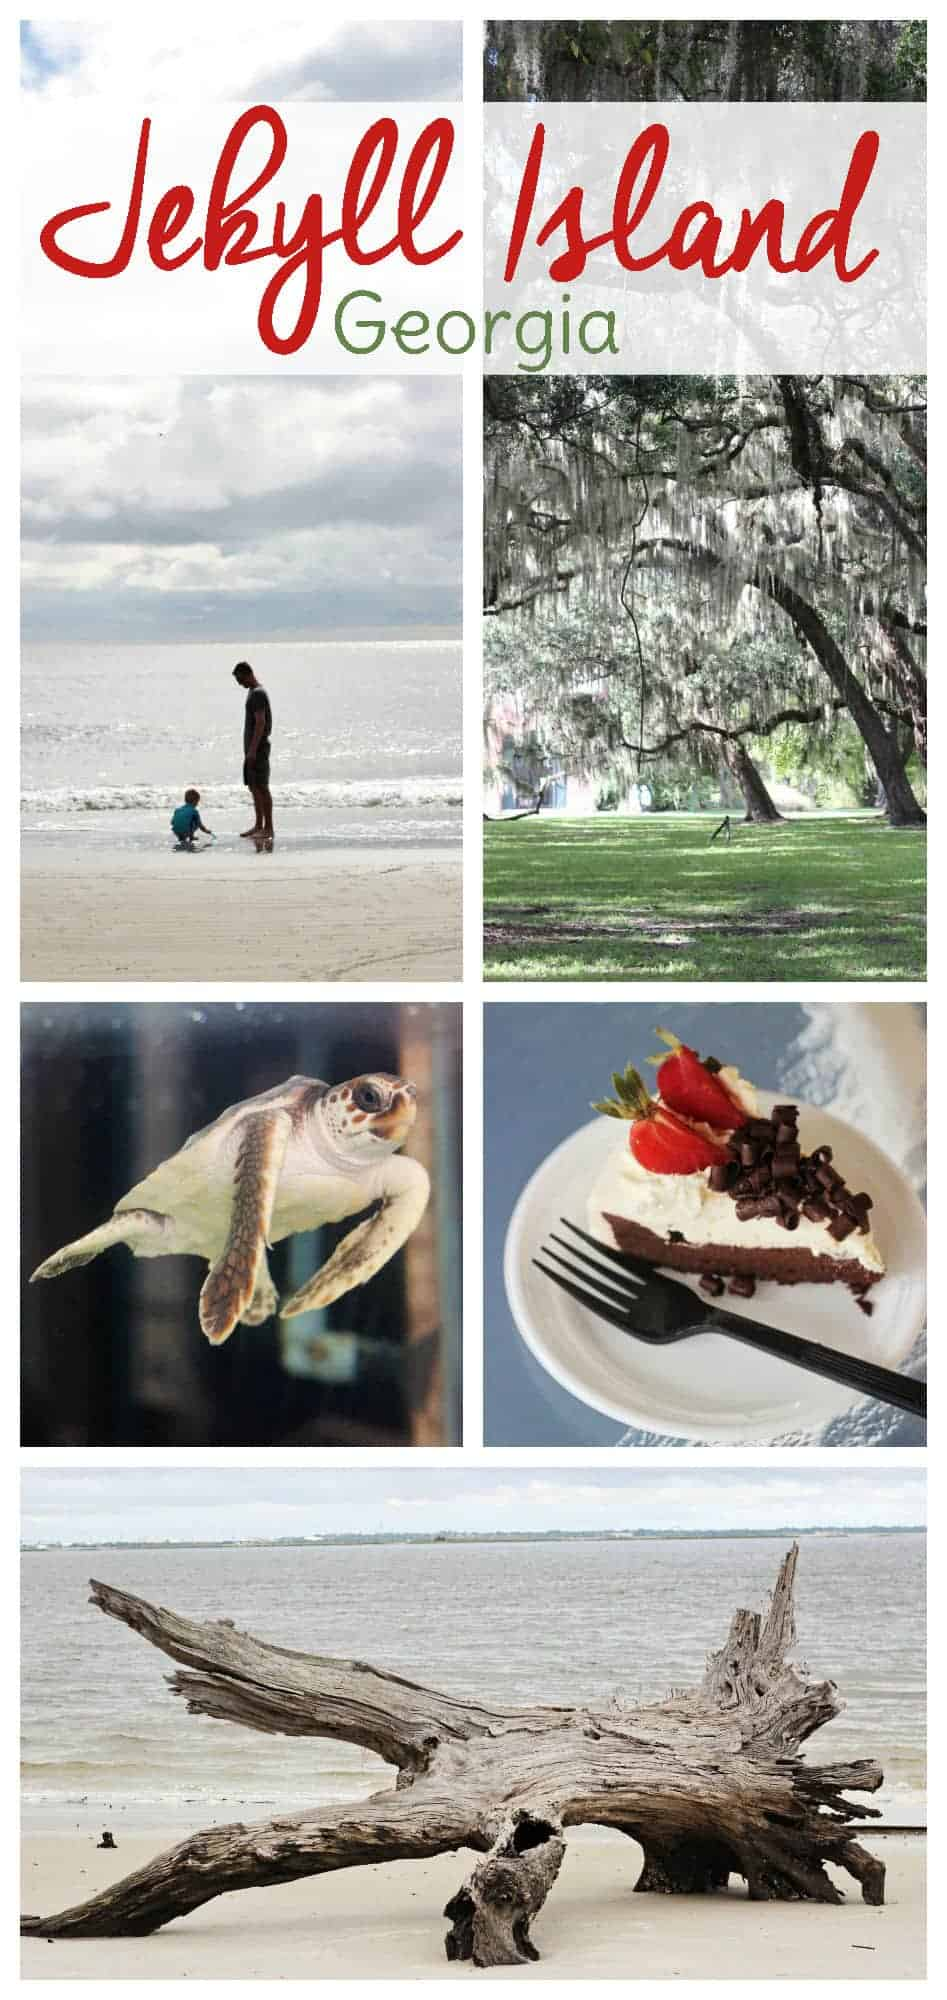 Tips for your family vacation to Jekyll Island, Georgia!